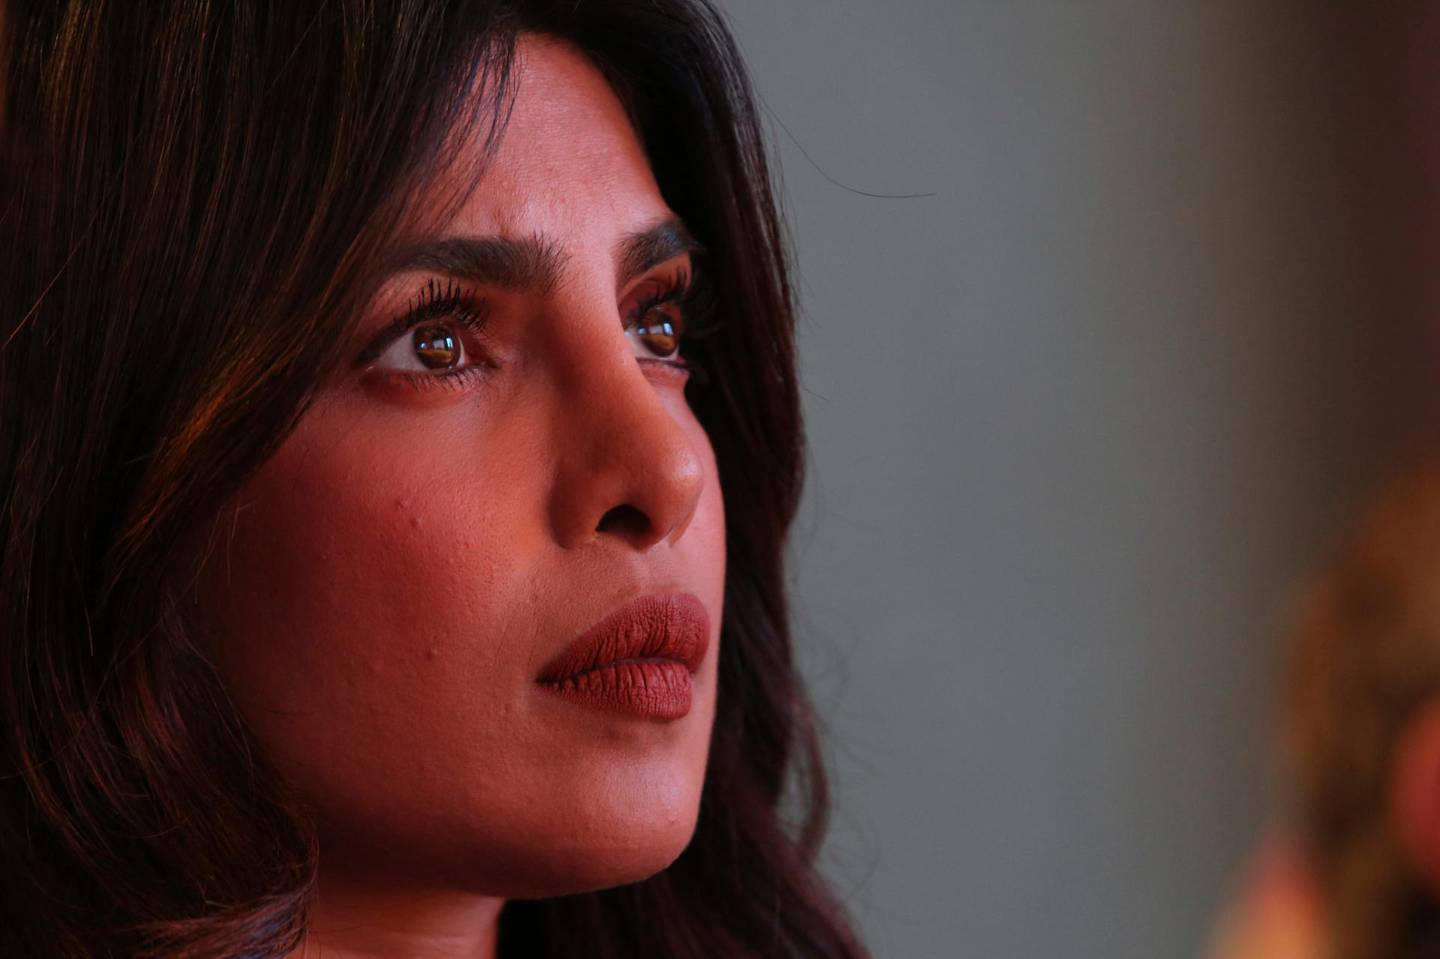 Actress Priyanka Chopra listens during a presentation on the Parkland High School shooting during the Global Education and Skills Forum in Dubai, United Arab Emirates, Saturday, March 17, 2018. Student survivors of a Florida high school shooting took their message calling for greater gun safety measures abroad for the first time on Saturday, sharing with educational professionals from around the world their frightening experience. (AP Photo/Jon Gambrell)